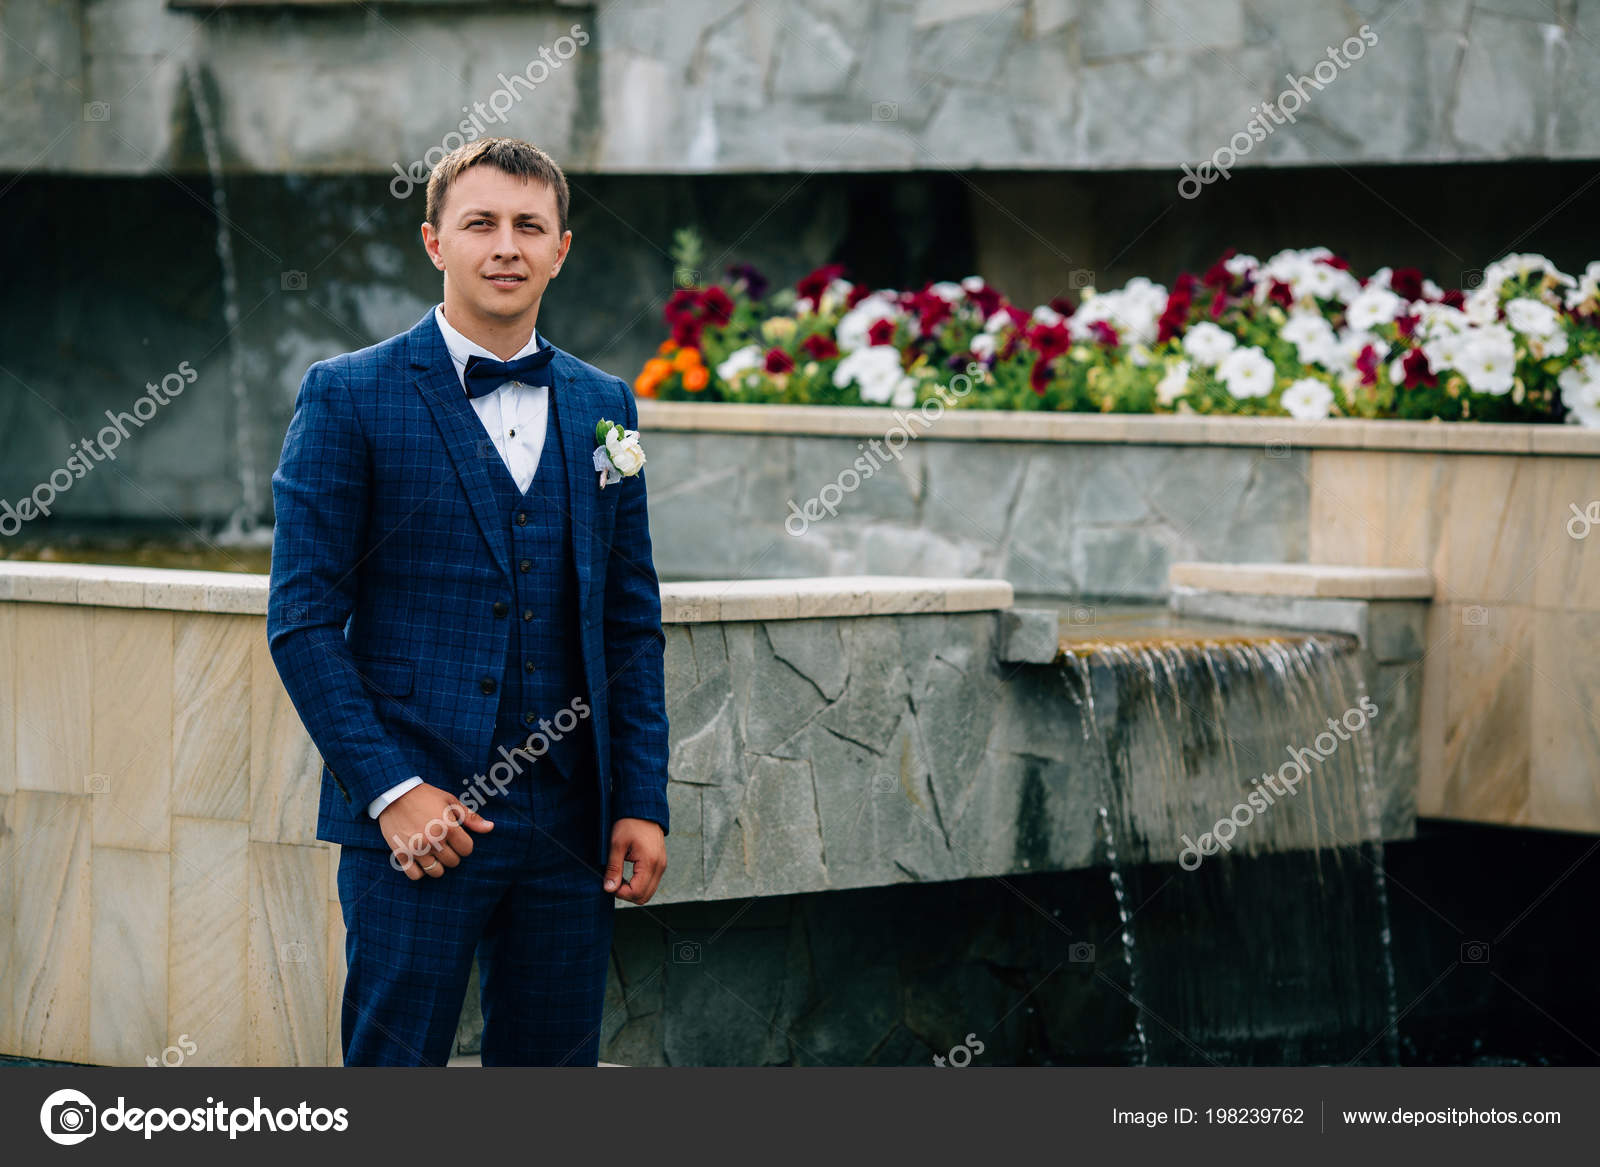 A Stylish Guy With A Bow Tie And A Buttonhole Poses Near An